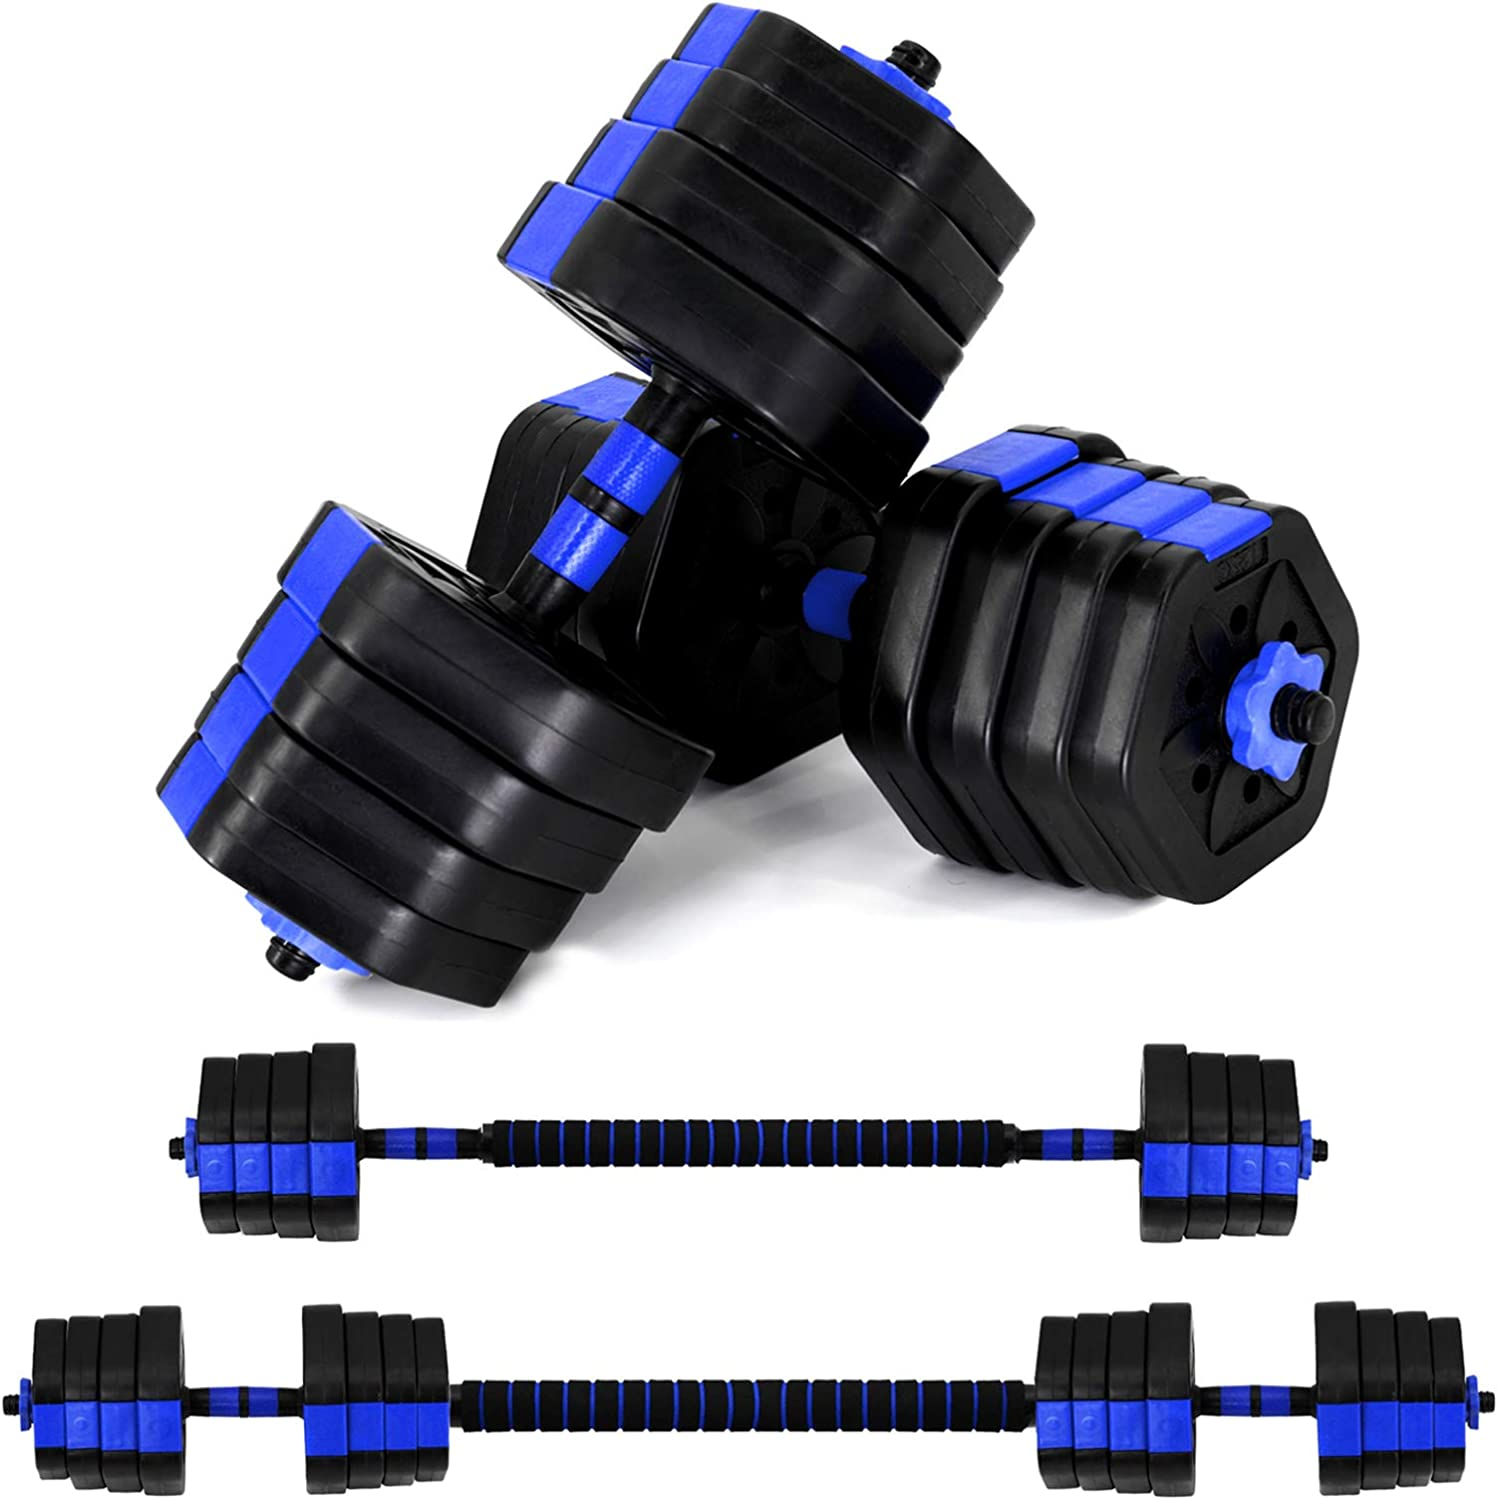 VIVITORY Fitness Dumbbells Set, Adjustable Weight Sets up to 44/66Lbs, Free Weight with Connecting Rod Used As Barbell, Iron Sand Mixture, Hexagon Design